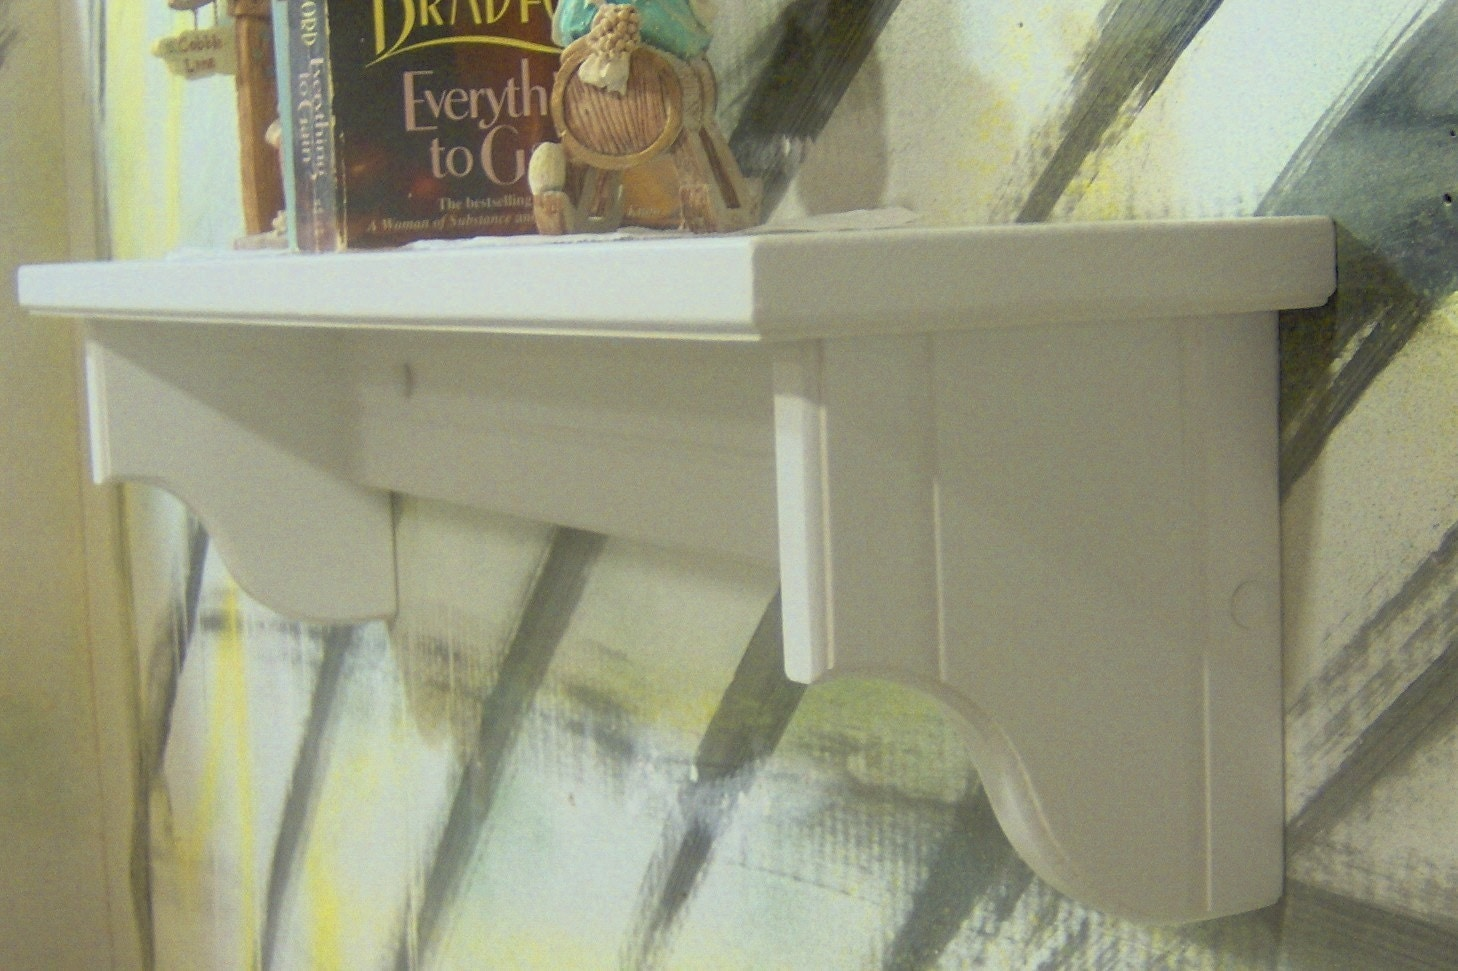 white 24 inch wall shelf 5 and 1 half inch deep. Black Bedroom Furniture Sets. Home Design Ideas